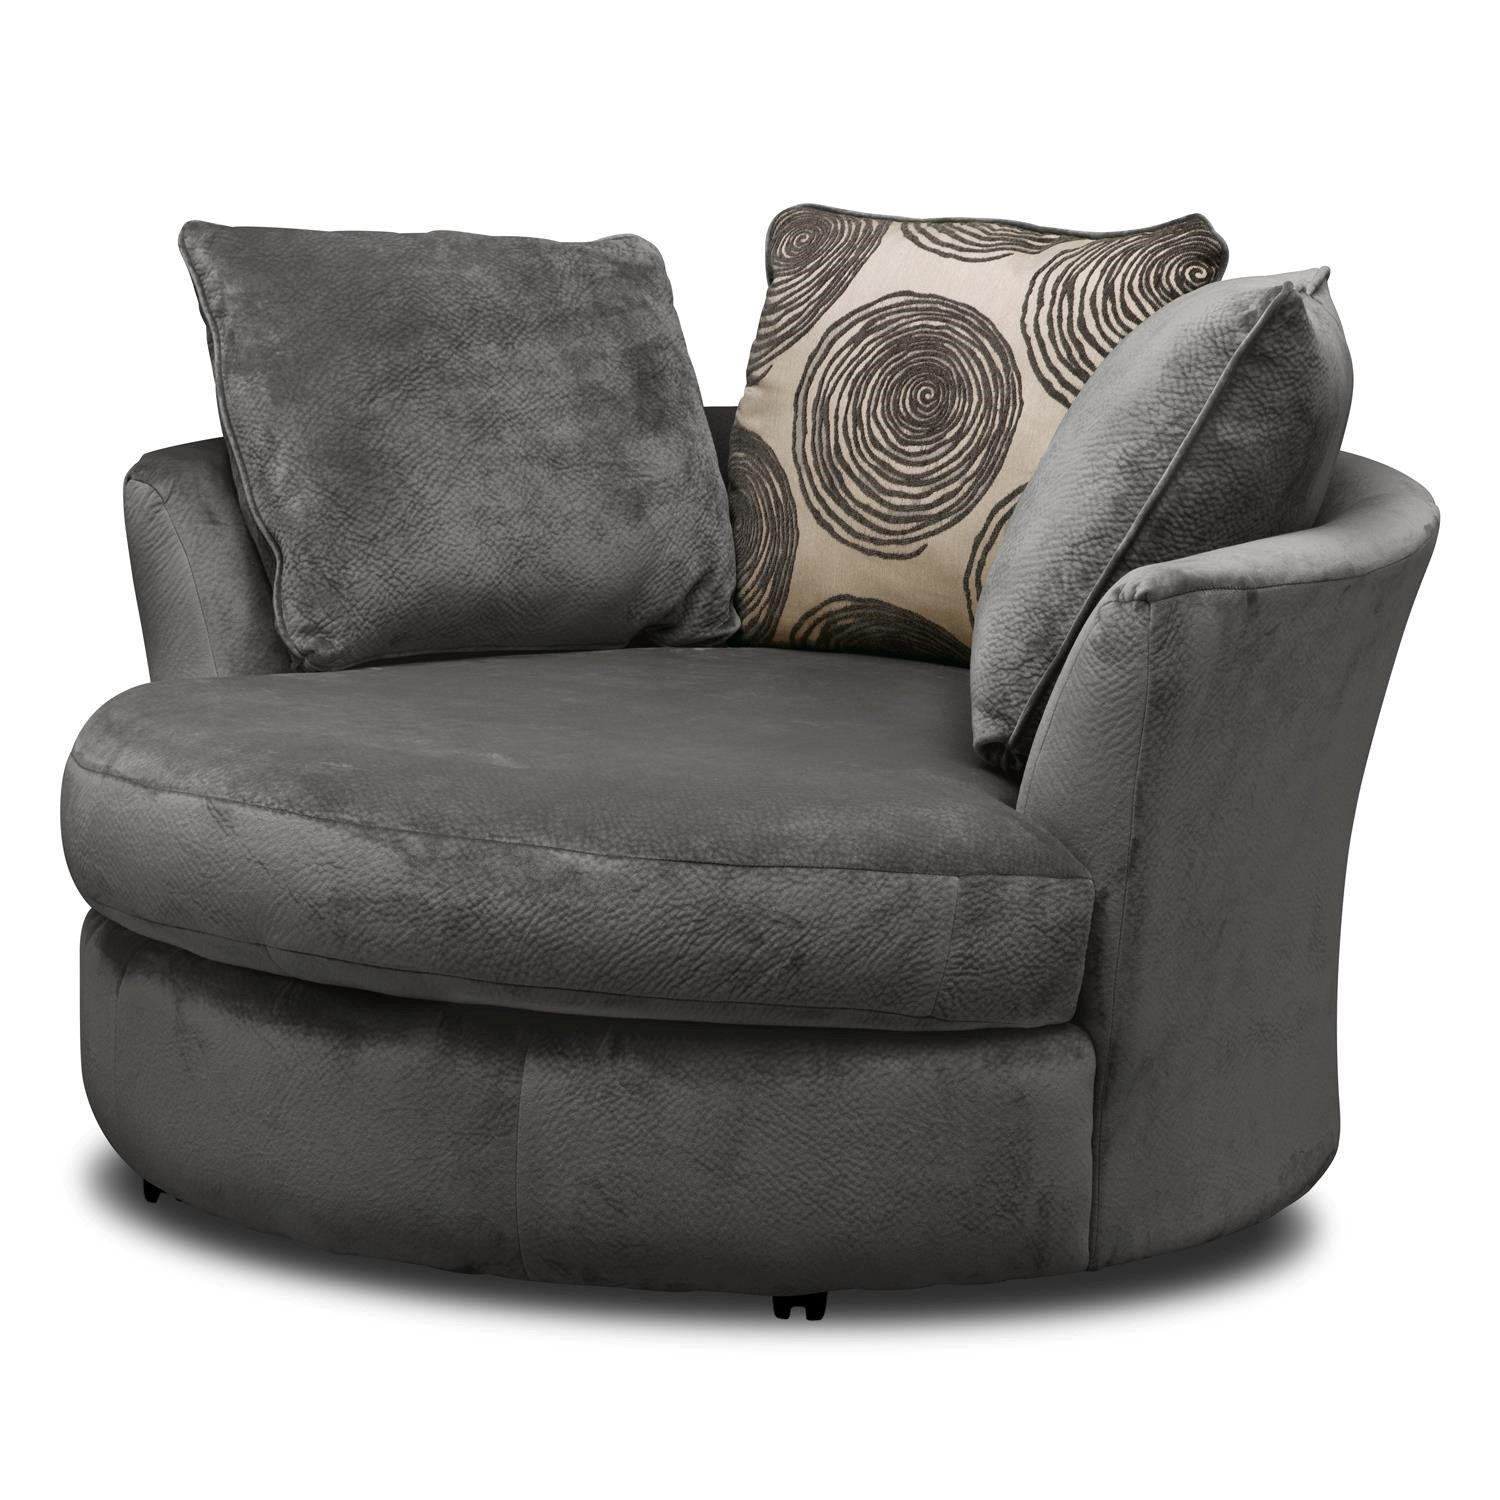 Rooms To Go Swivel Chair 20 Best Spinning Sofa Chairs Sofa Ideas